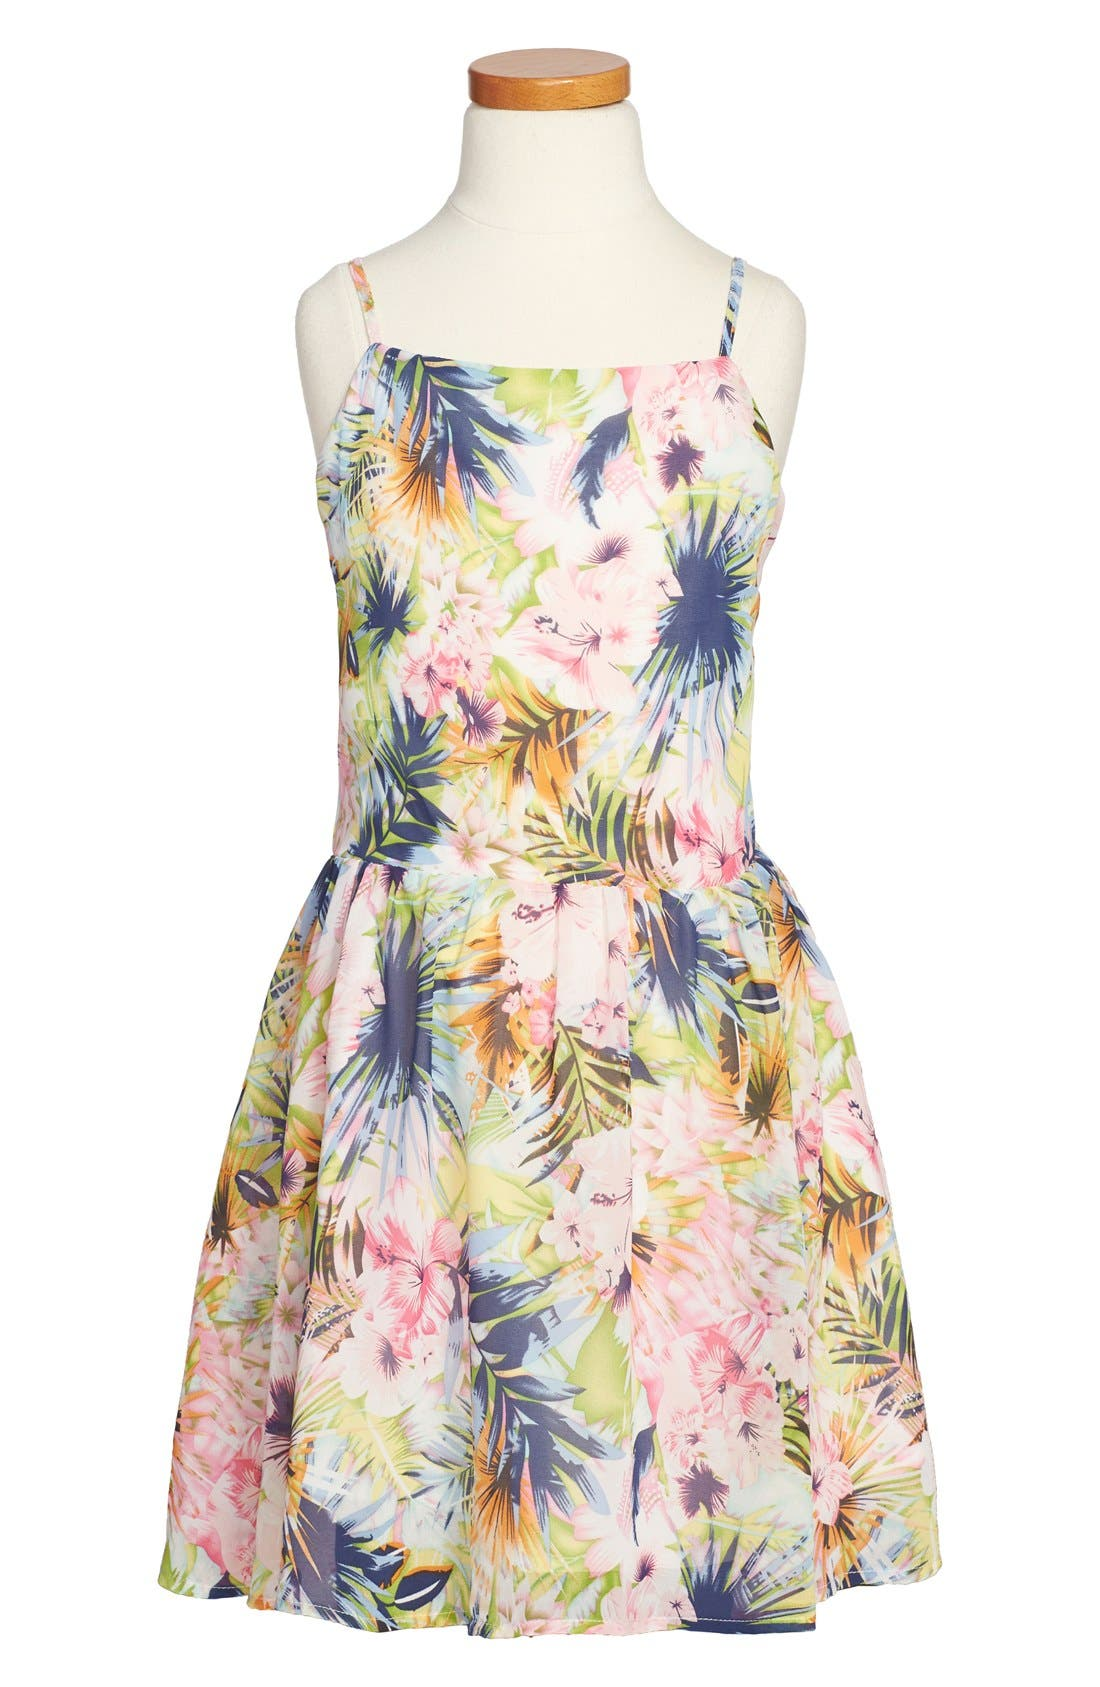 Main Image - Miss Behave 'Laurie' Floral Print Sleeveless Dress (Big Girls)